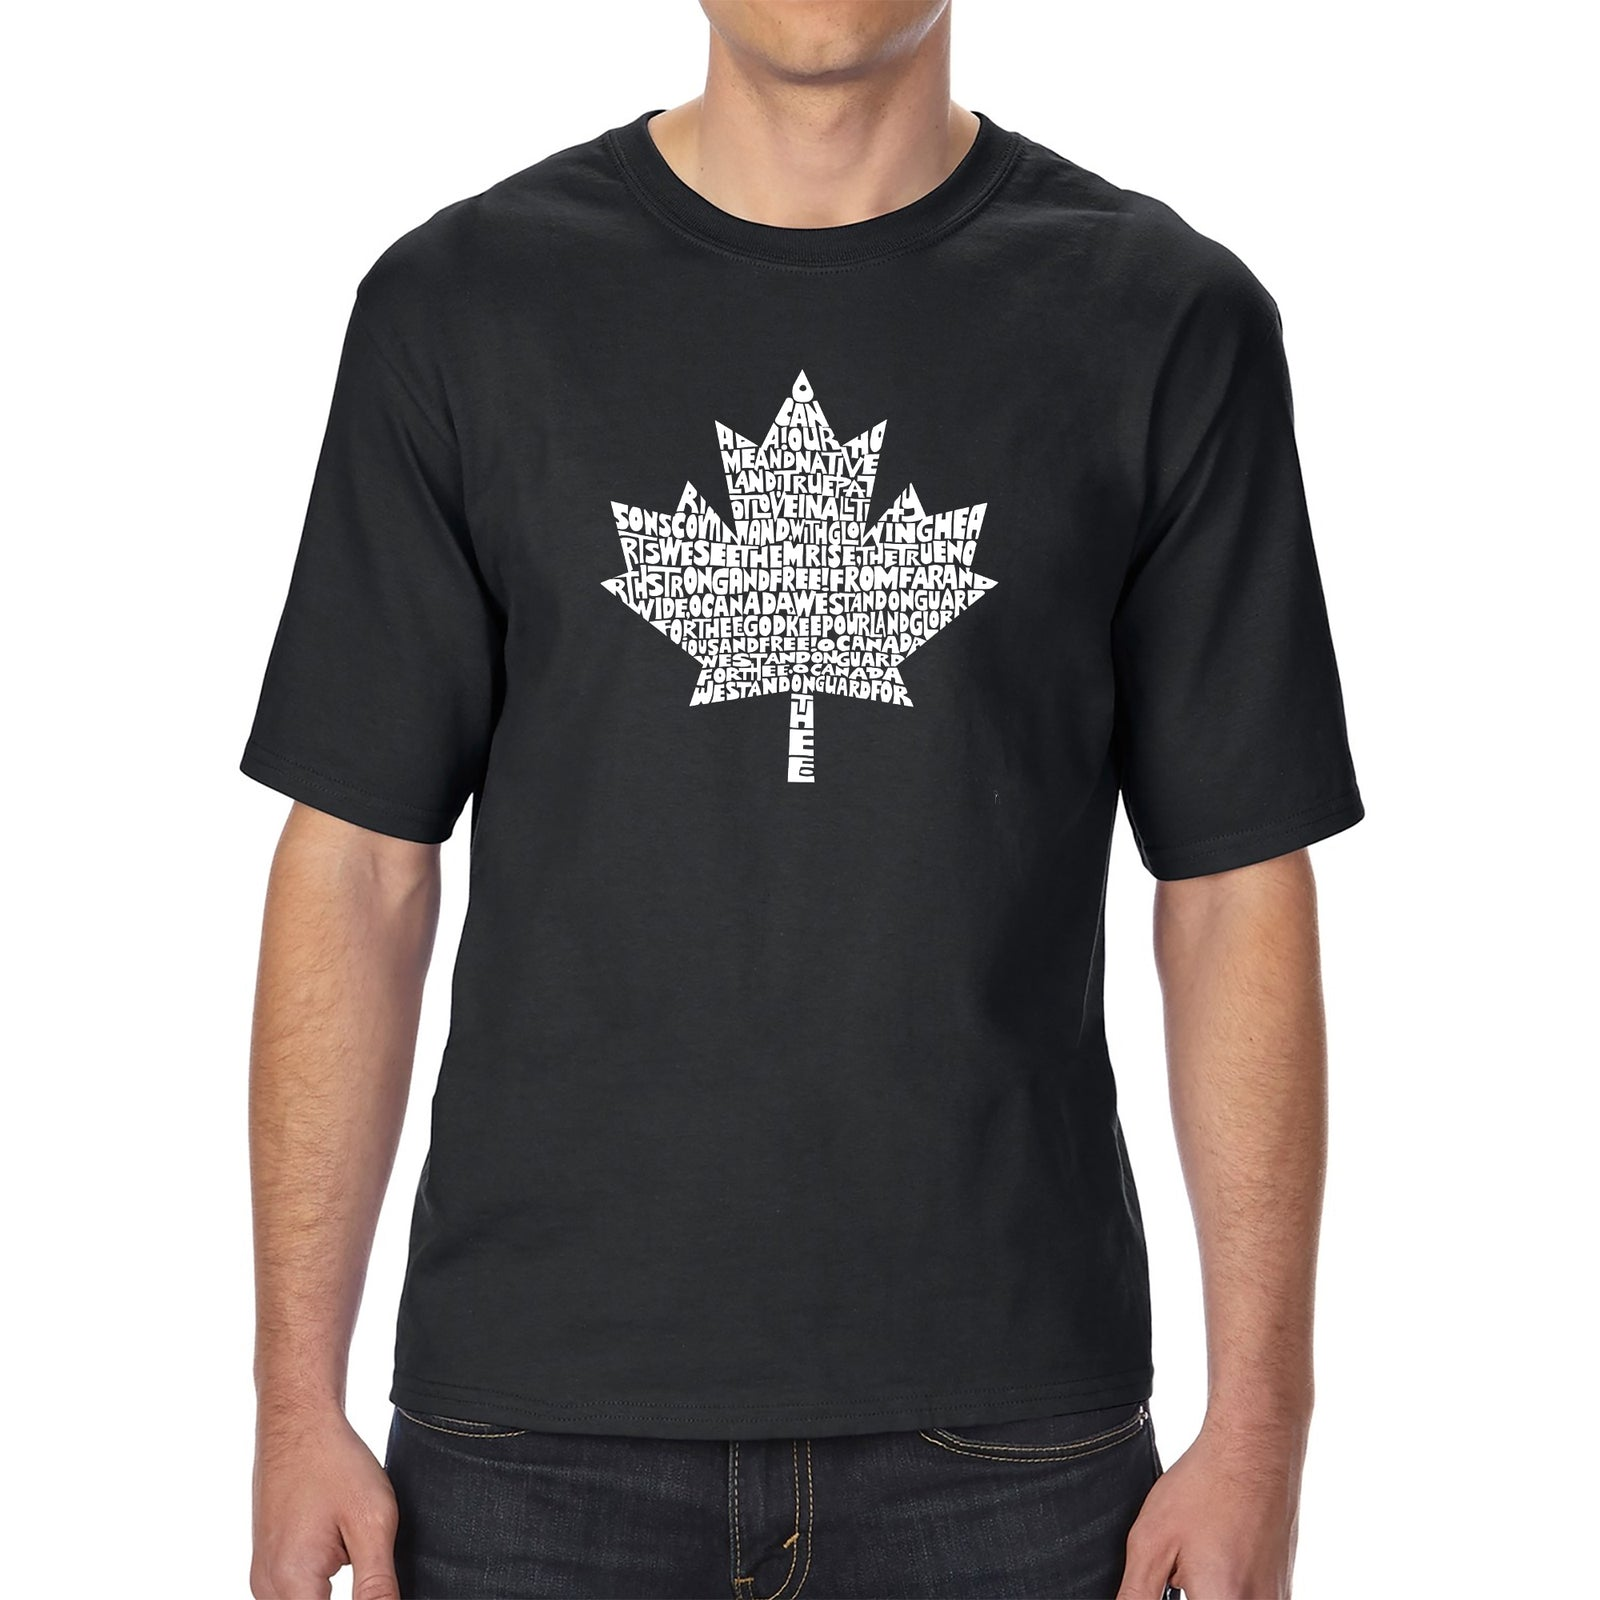 Men's Tall and Long Word Art T-shirt - CANADIAN NATIONAL ANTHEM